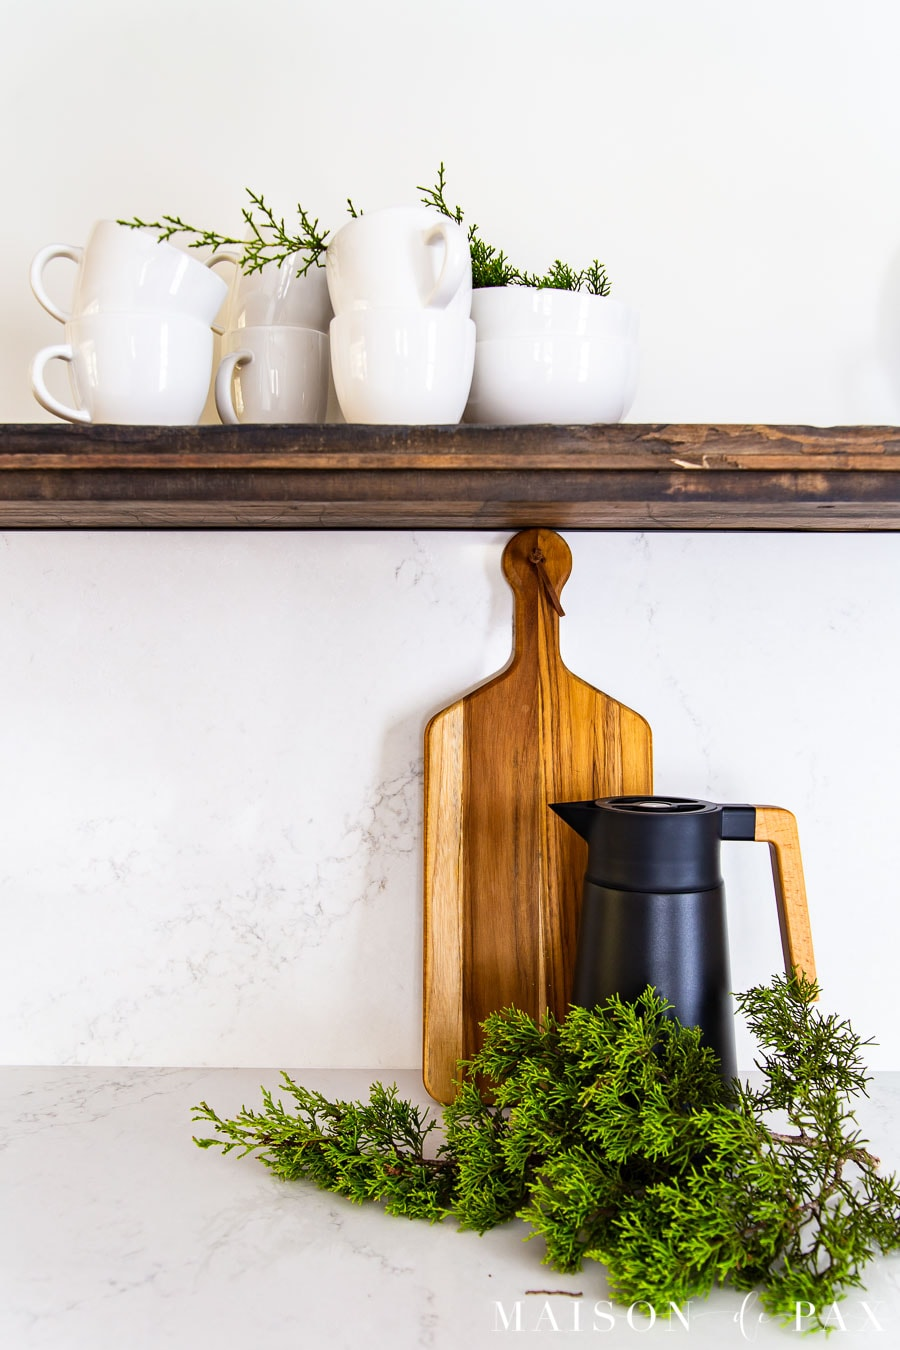 fresh cedar clippings on kitchen counter for holiday decor | Maison de Pax